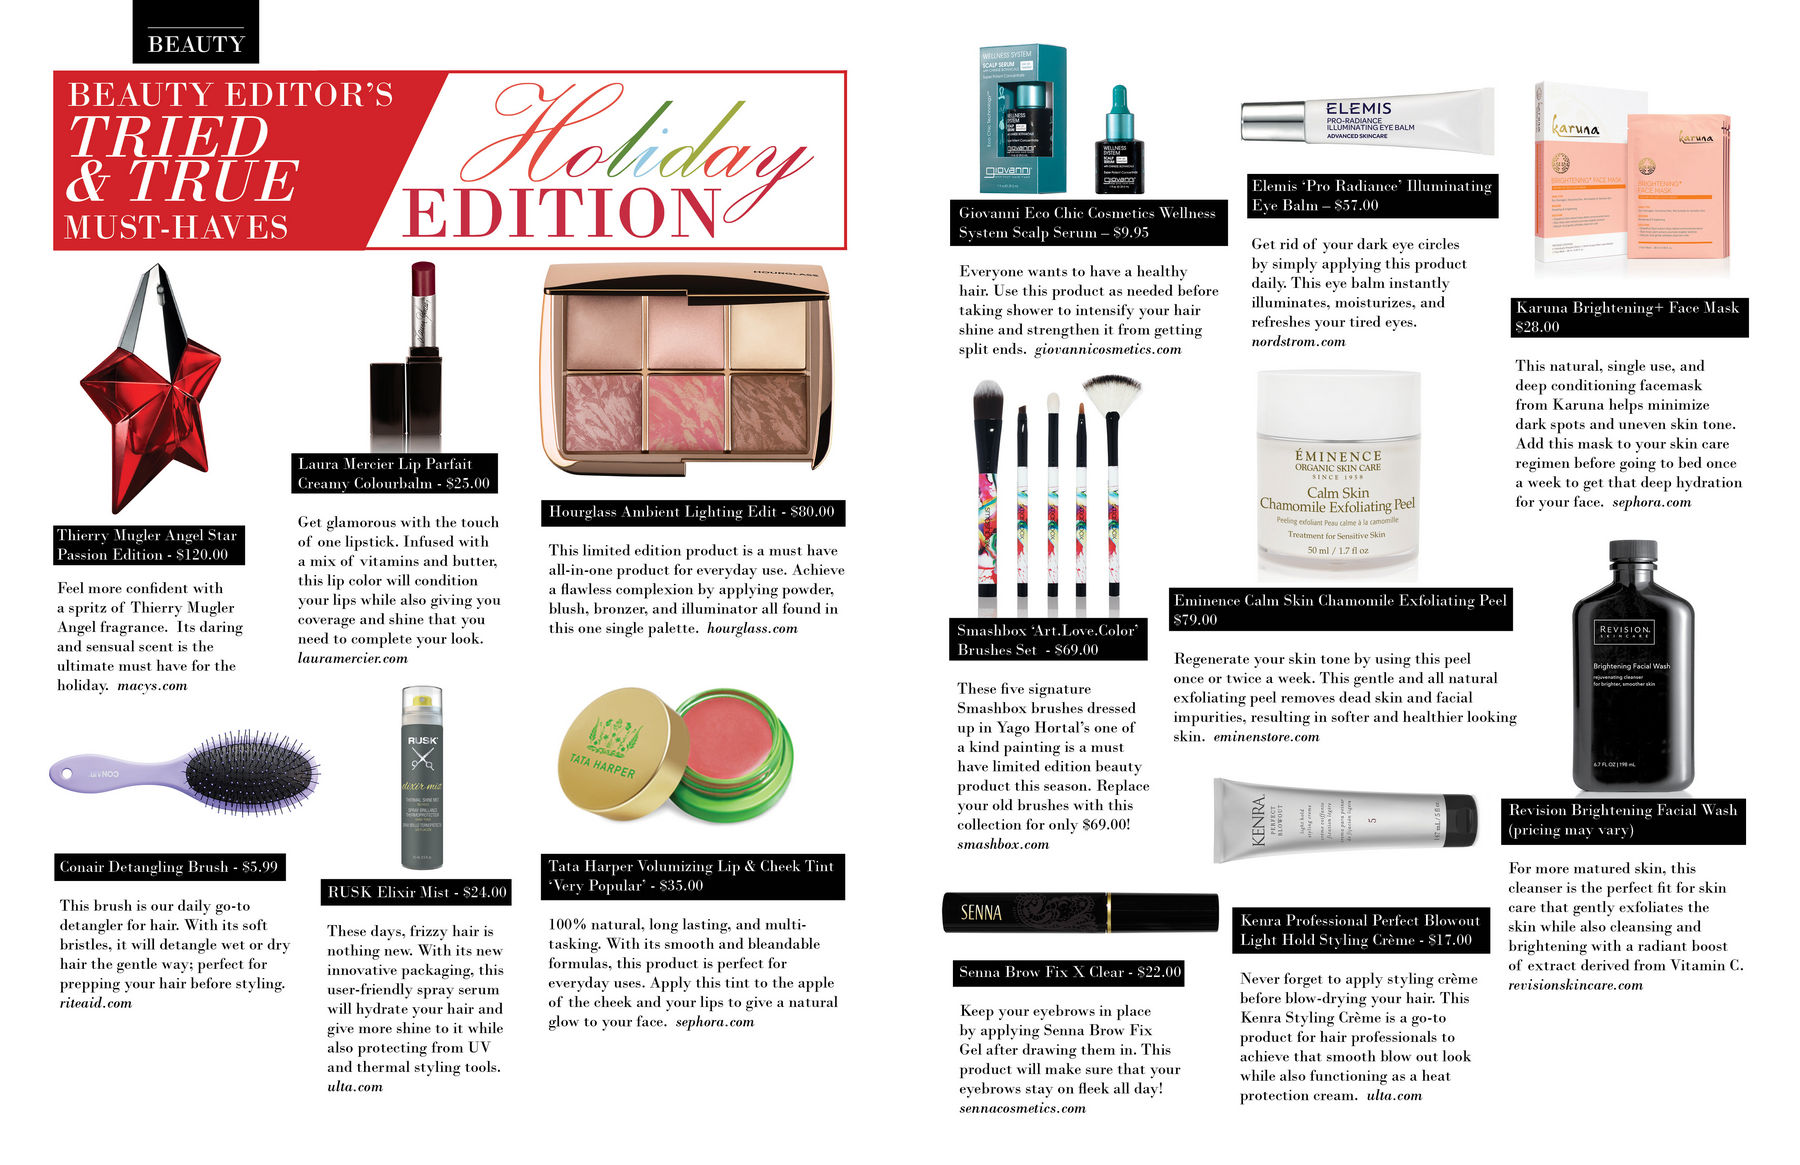 BEAUTY EDITOR'S TRIED & TRUE: Holiday Edition